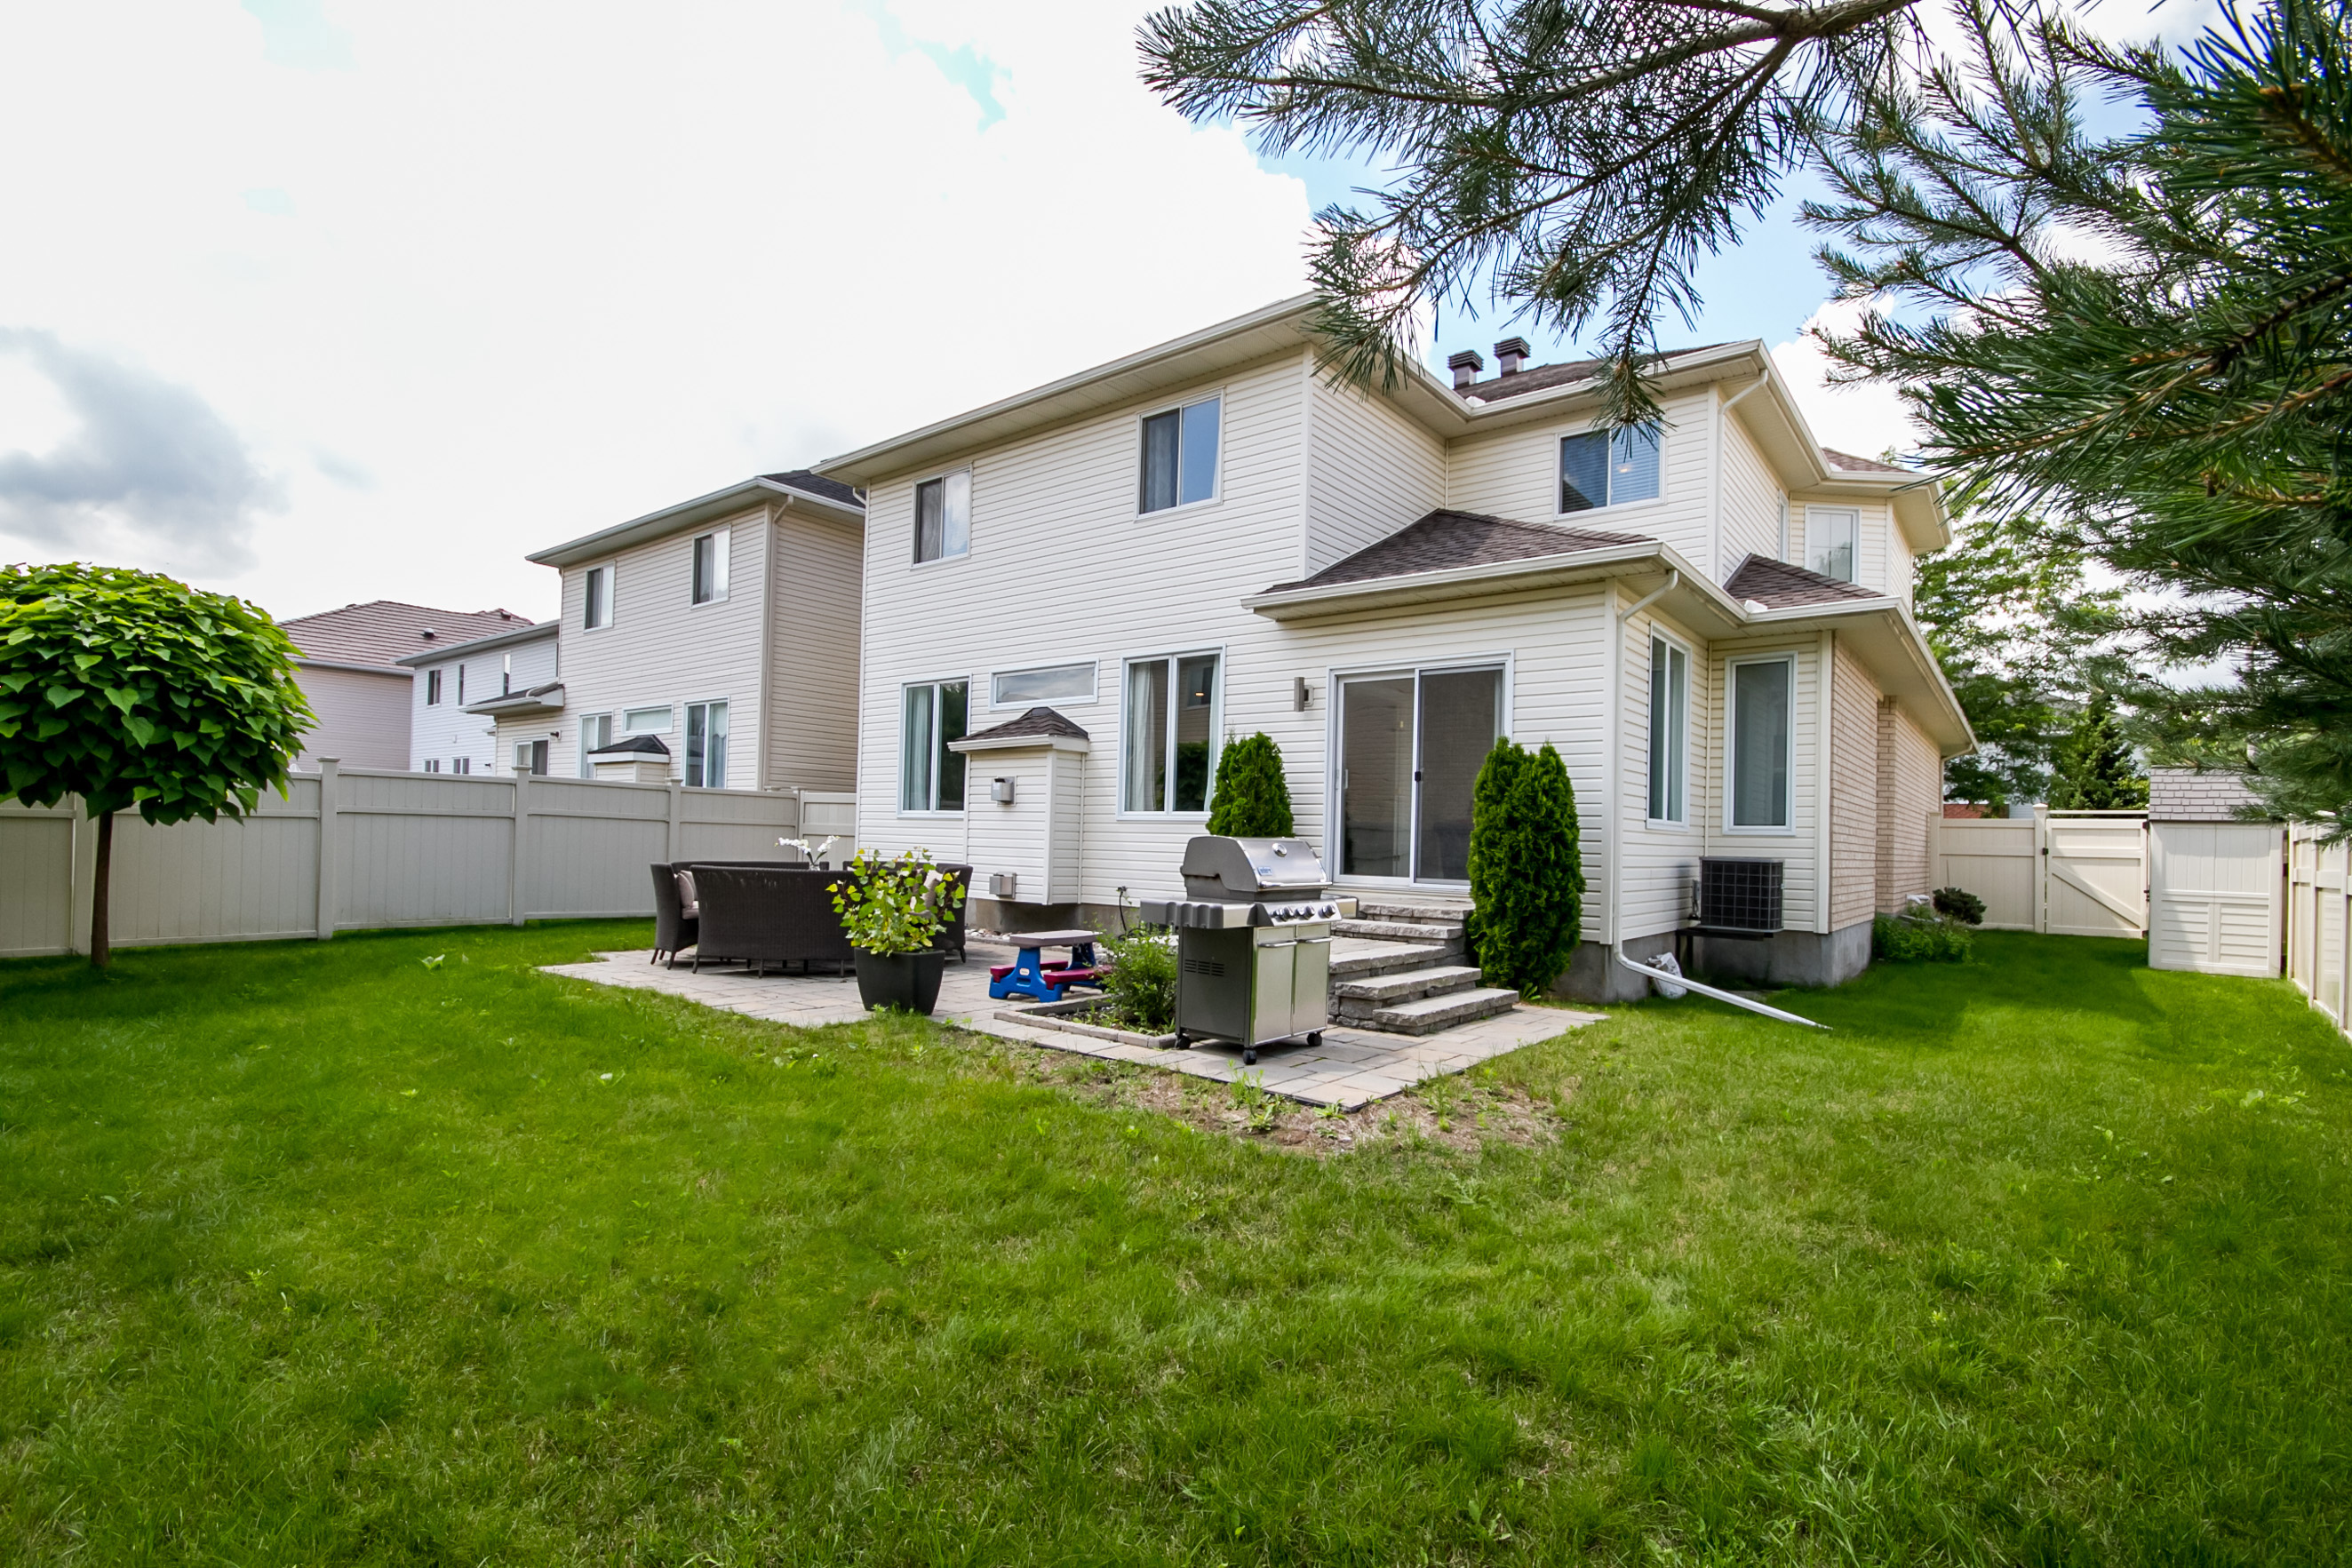 44 Noblesse Ave for sale